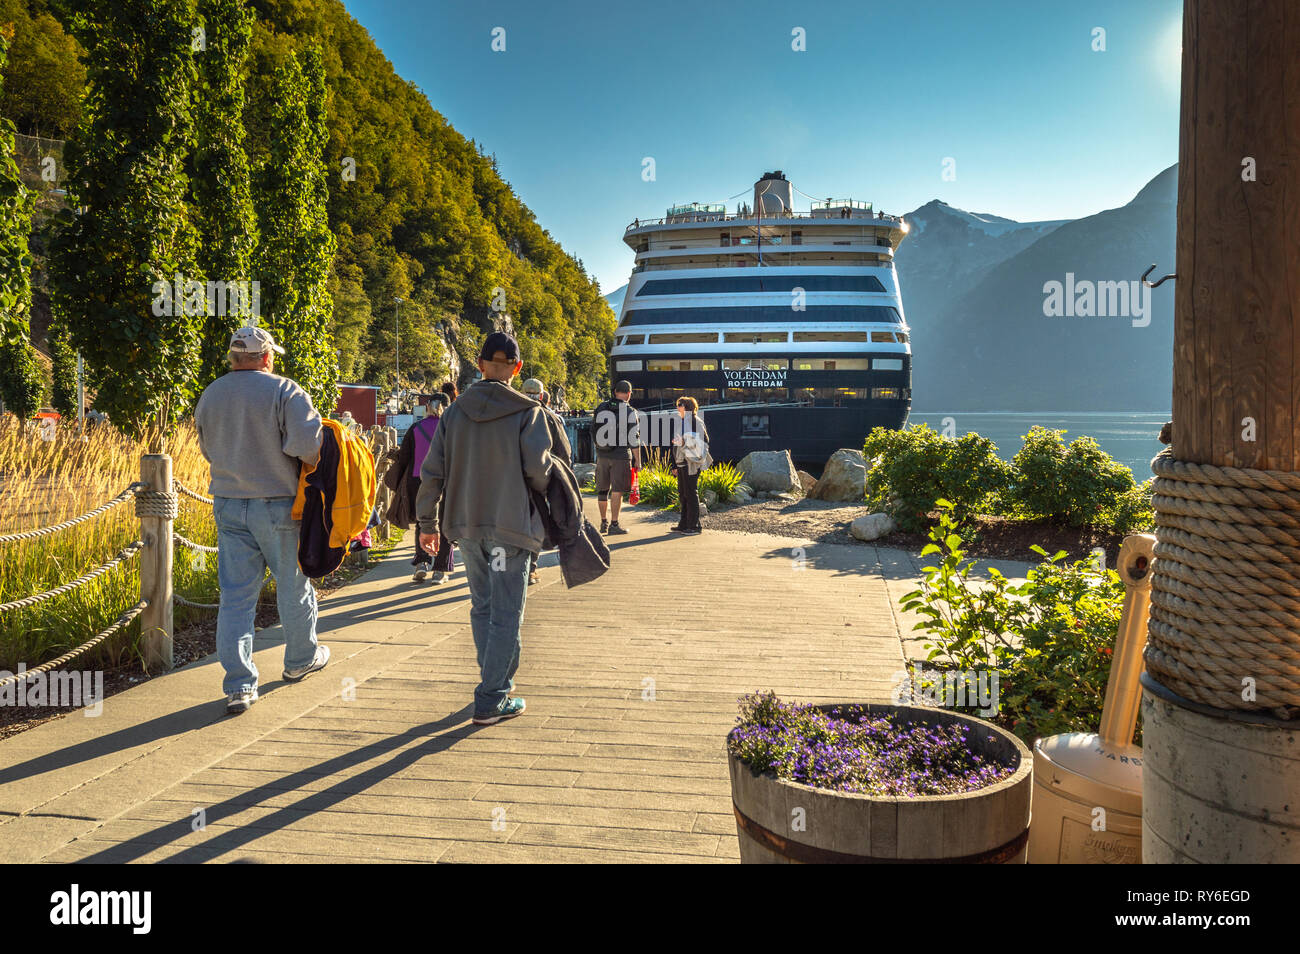 September 15, 2018 - Skagway, AK: Passengers returning on foot to cruise ships. Stock Photo